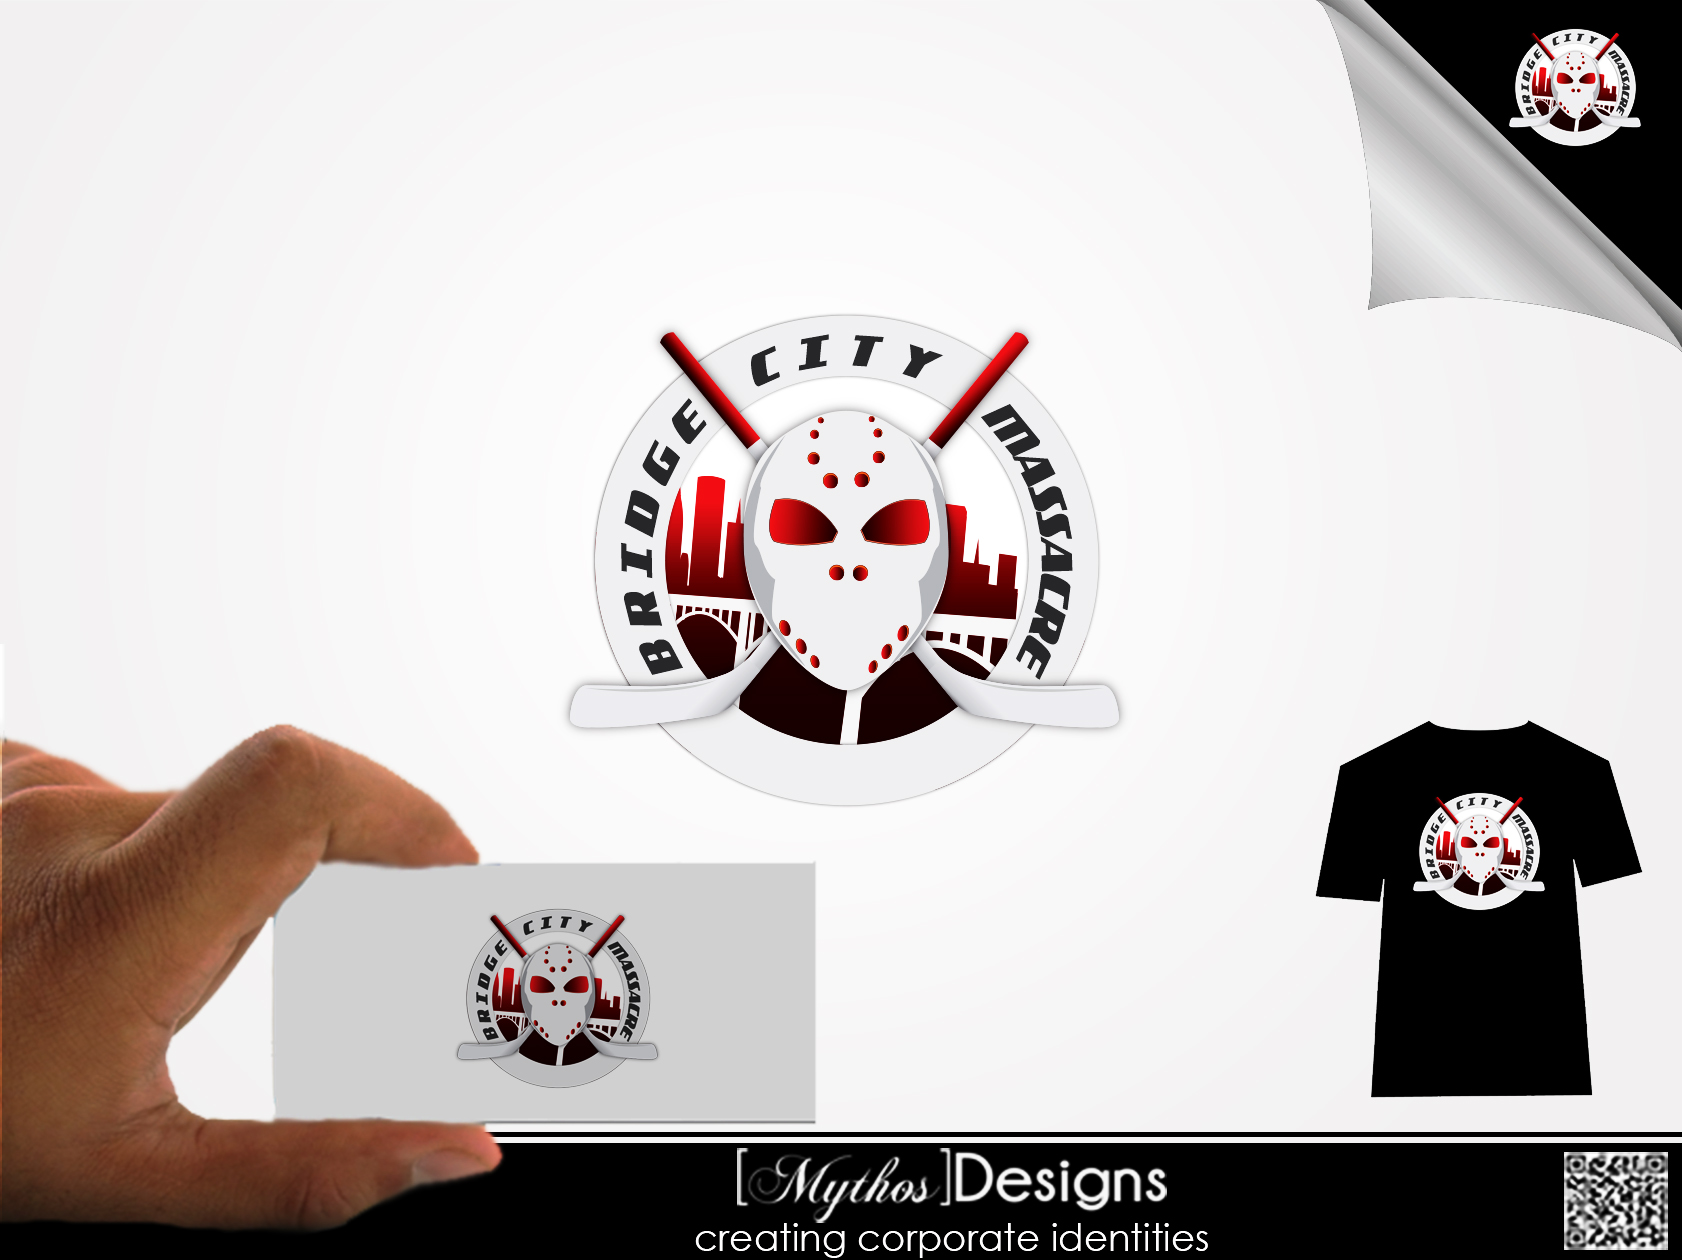 Logo Design by Mythos Designs - Entry No. 5 in the Logo Design Contest New Logo Design for Bridge City Massacre.